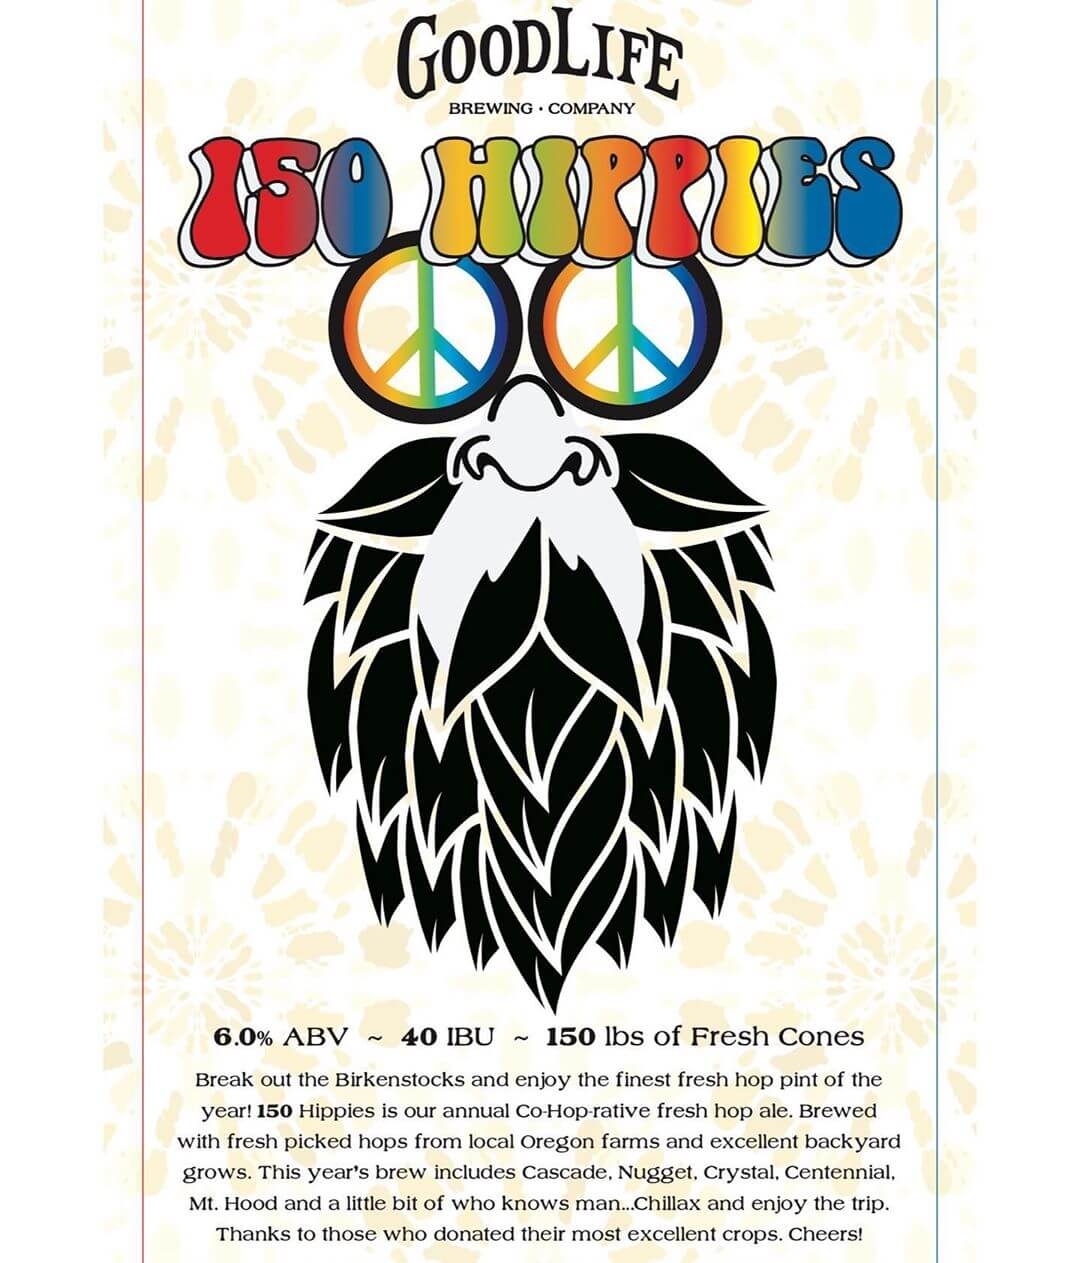 Our annual Co-hop-rative Fresh Hop Beer, 150 Hippies, will be on draft in the pub starting Friday! You'll also be able to enjoy it at the @hoodriverhopsfest @sistersfreshhop and on draft at a few bars throughout the #pnw so try some before it's gone! A big thank you goes out to everyone who brought us their hops! #goodlifebrewing #150hippiesfreshhop